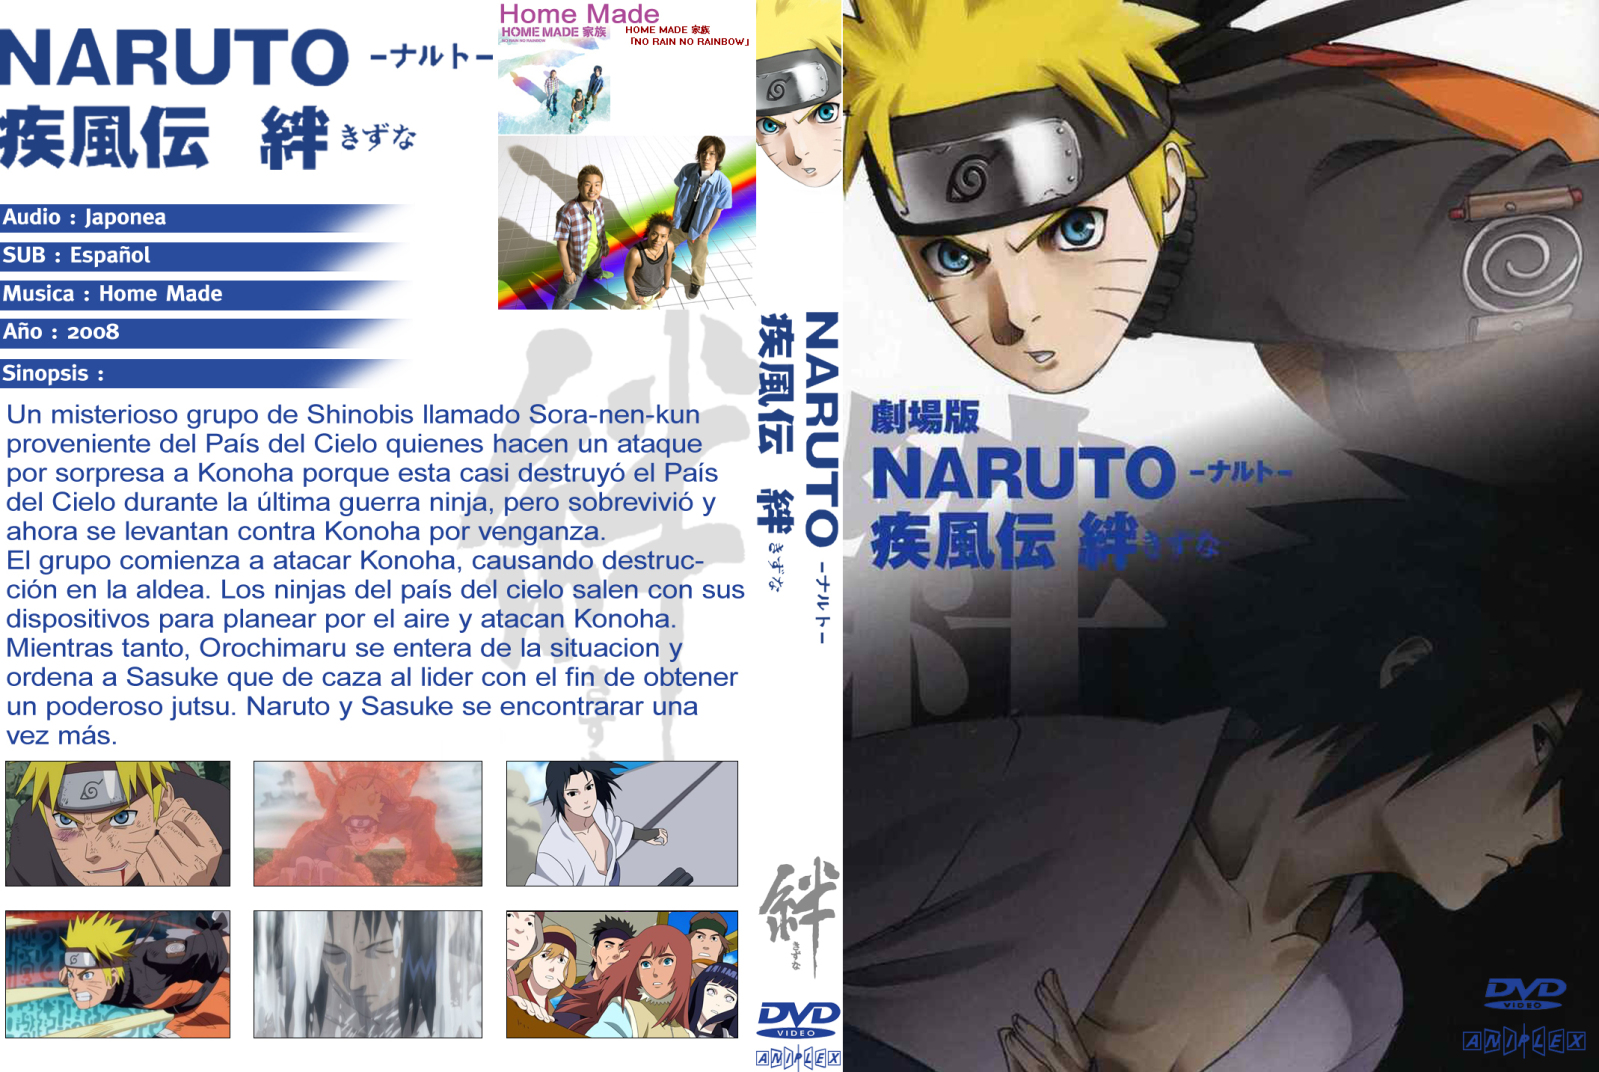 Naruto Shippuden Movies 5/7 calidad 720p dual Ingles y Japones + Sub Latino Movie+2